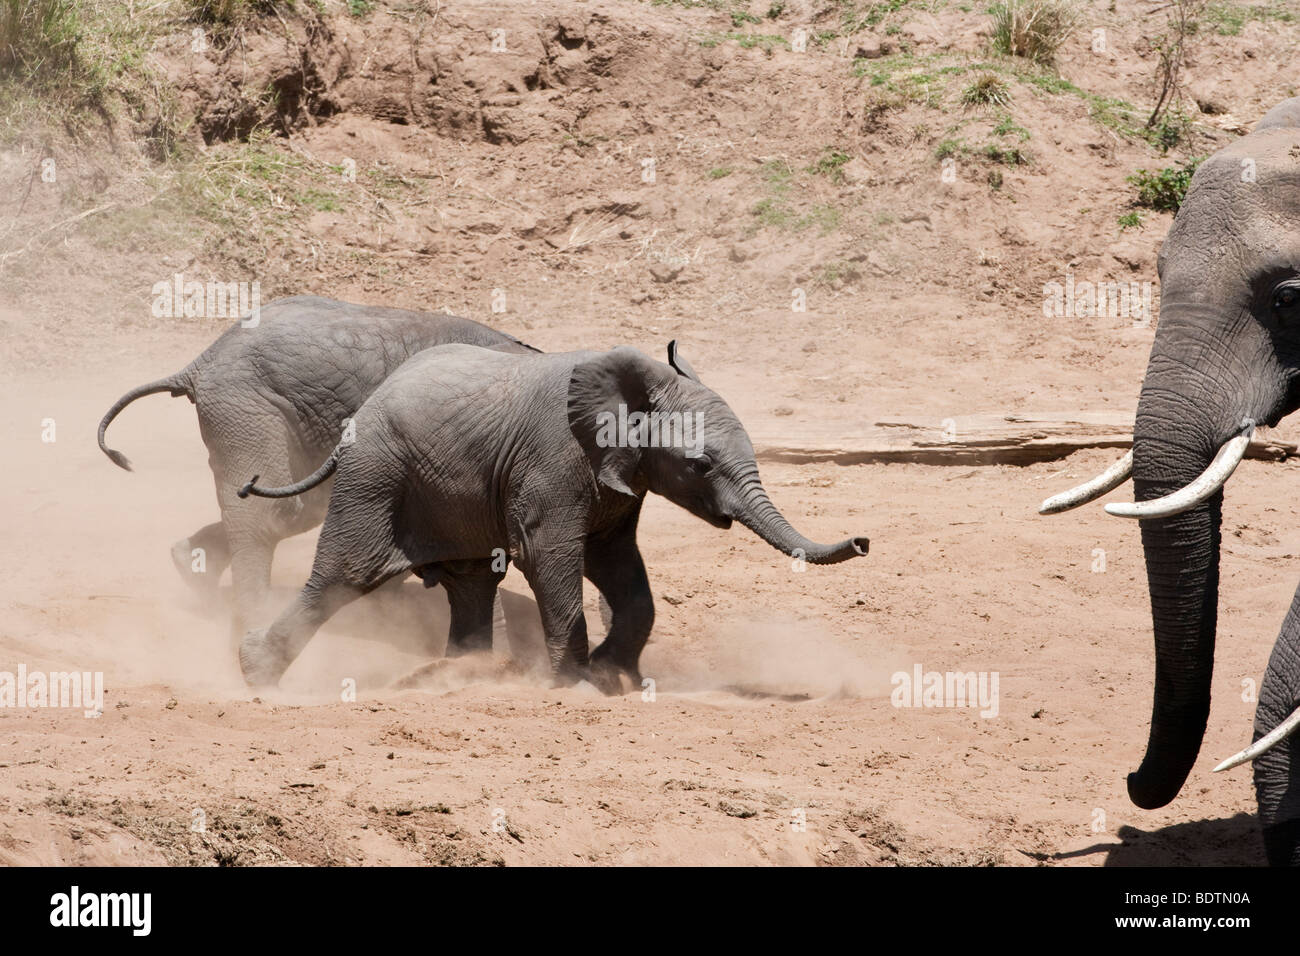 Adorable cute funny twin tiny baby African elephants excited running, stirring up dust, watched by adults at riverbank - Stock Image